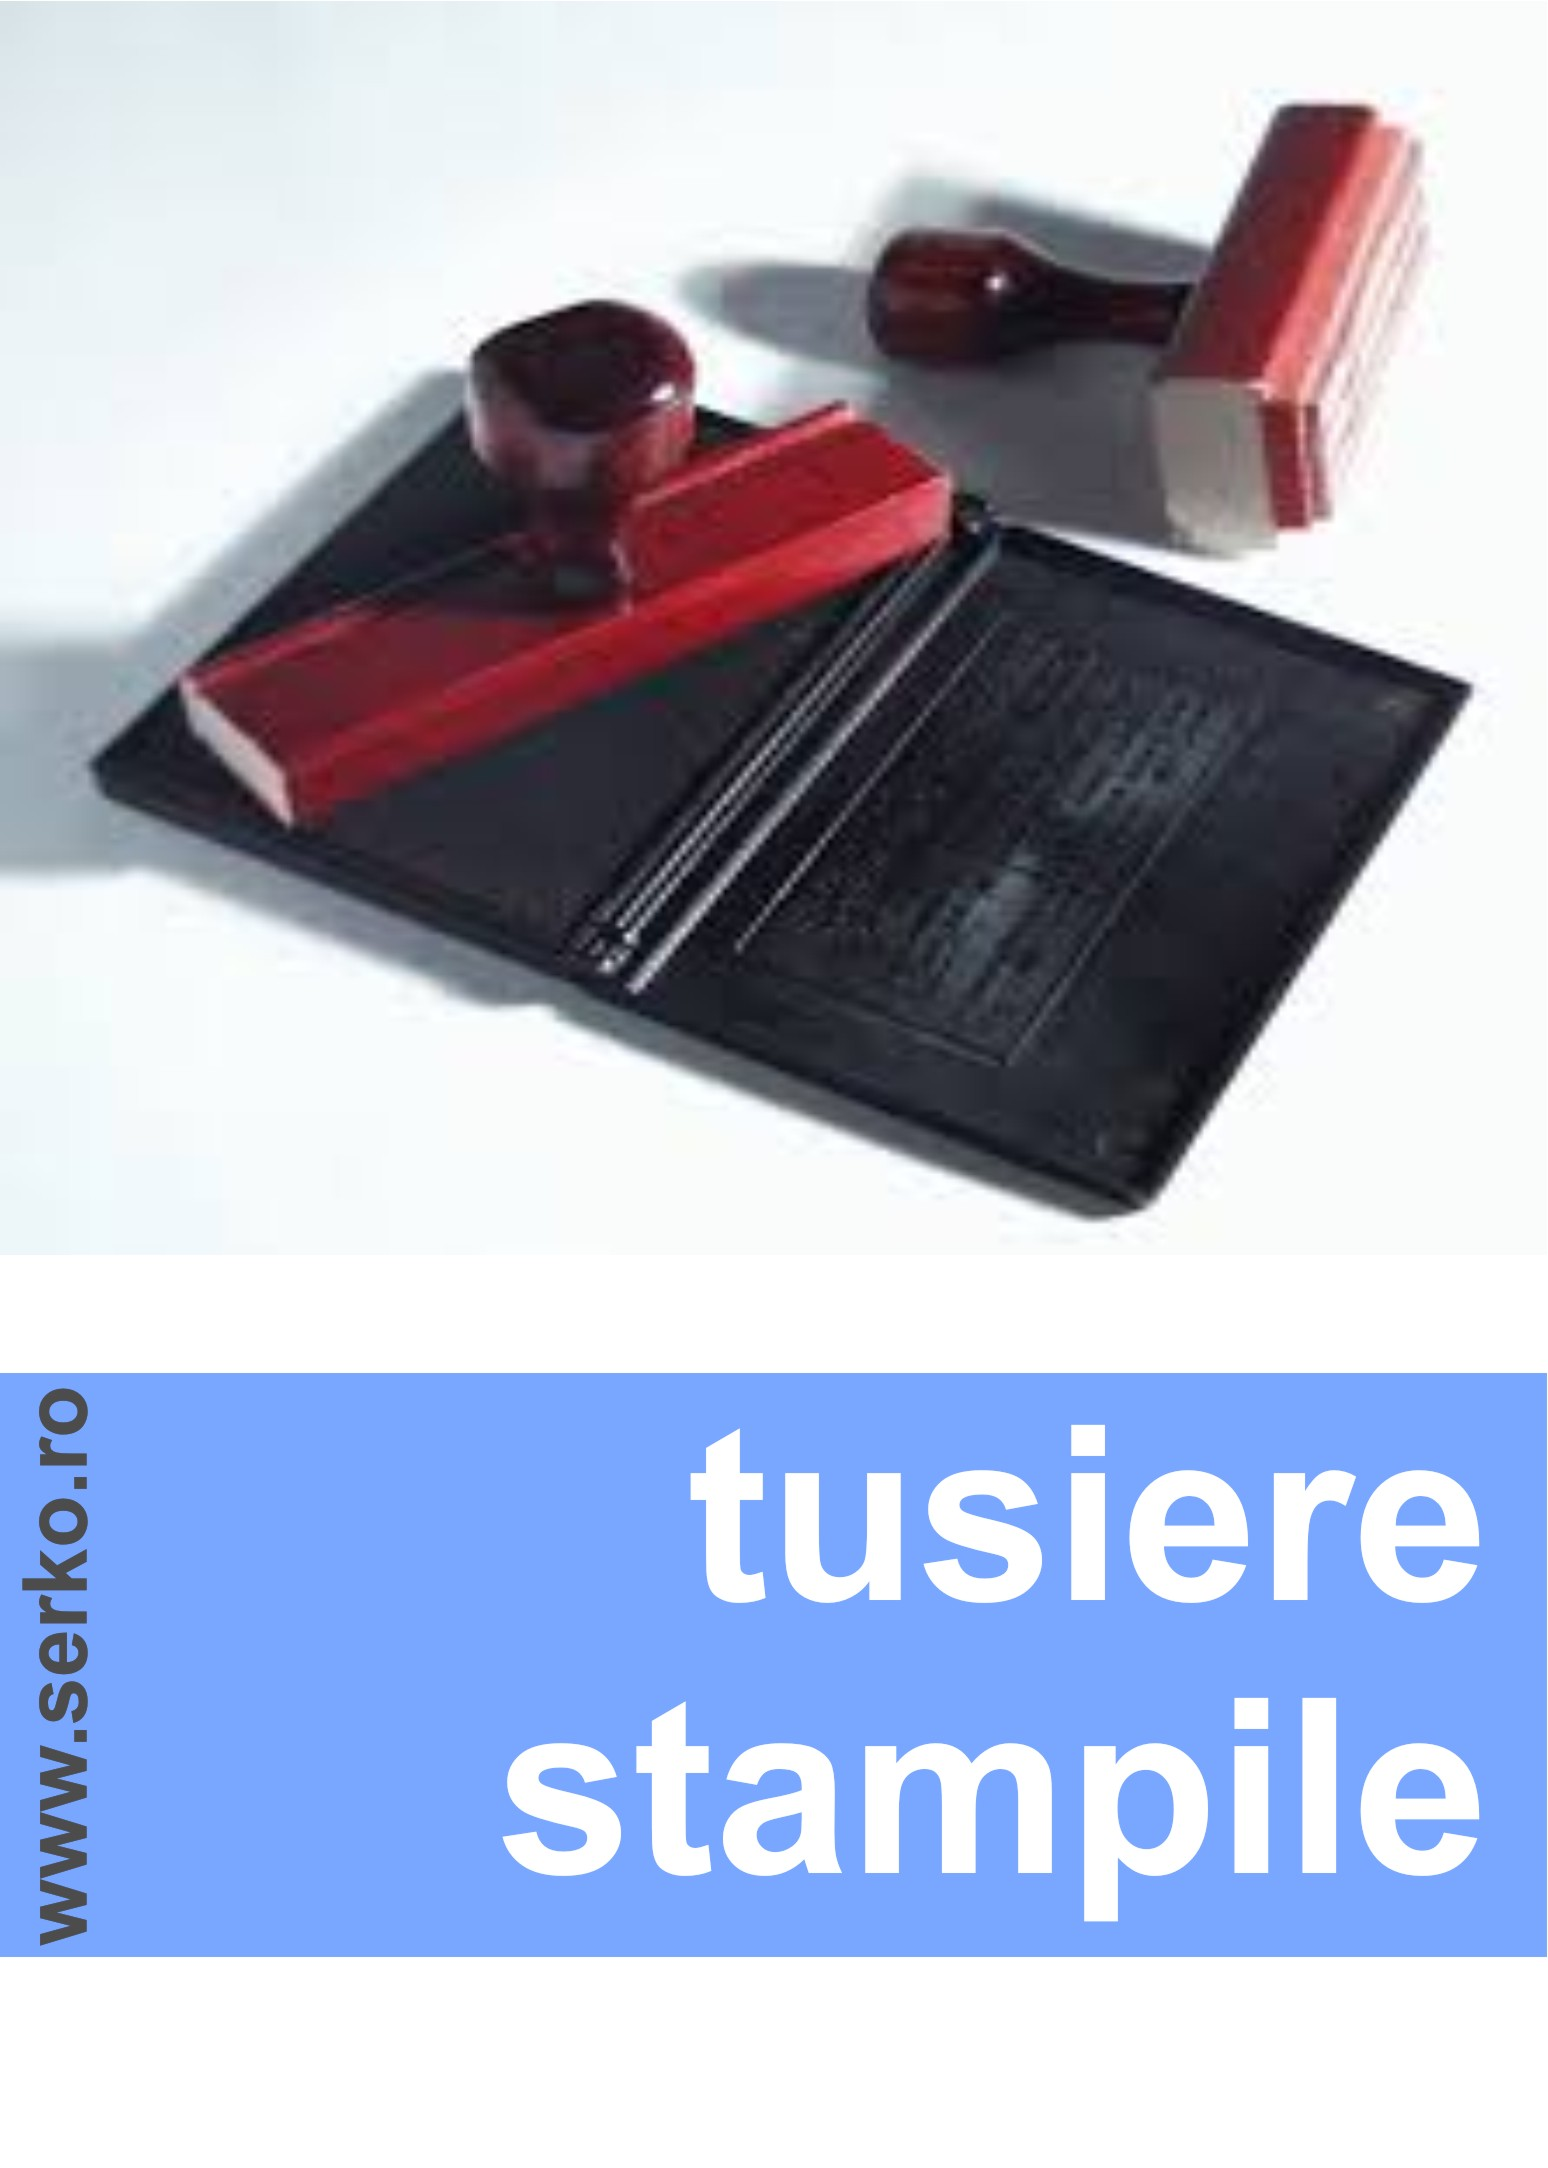 tusiere stampile